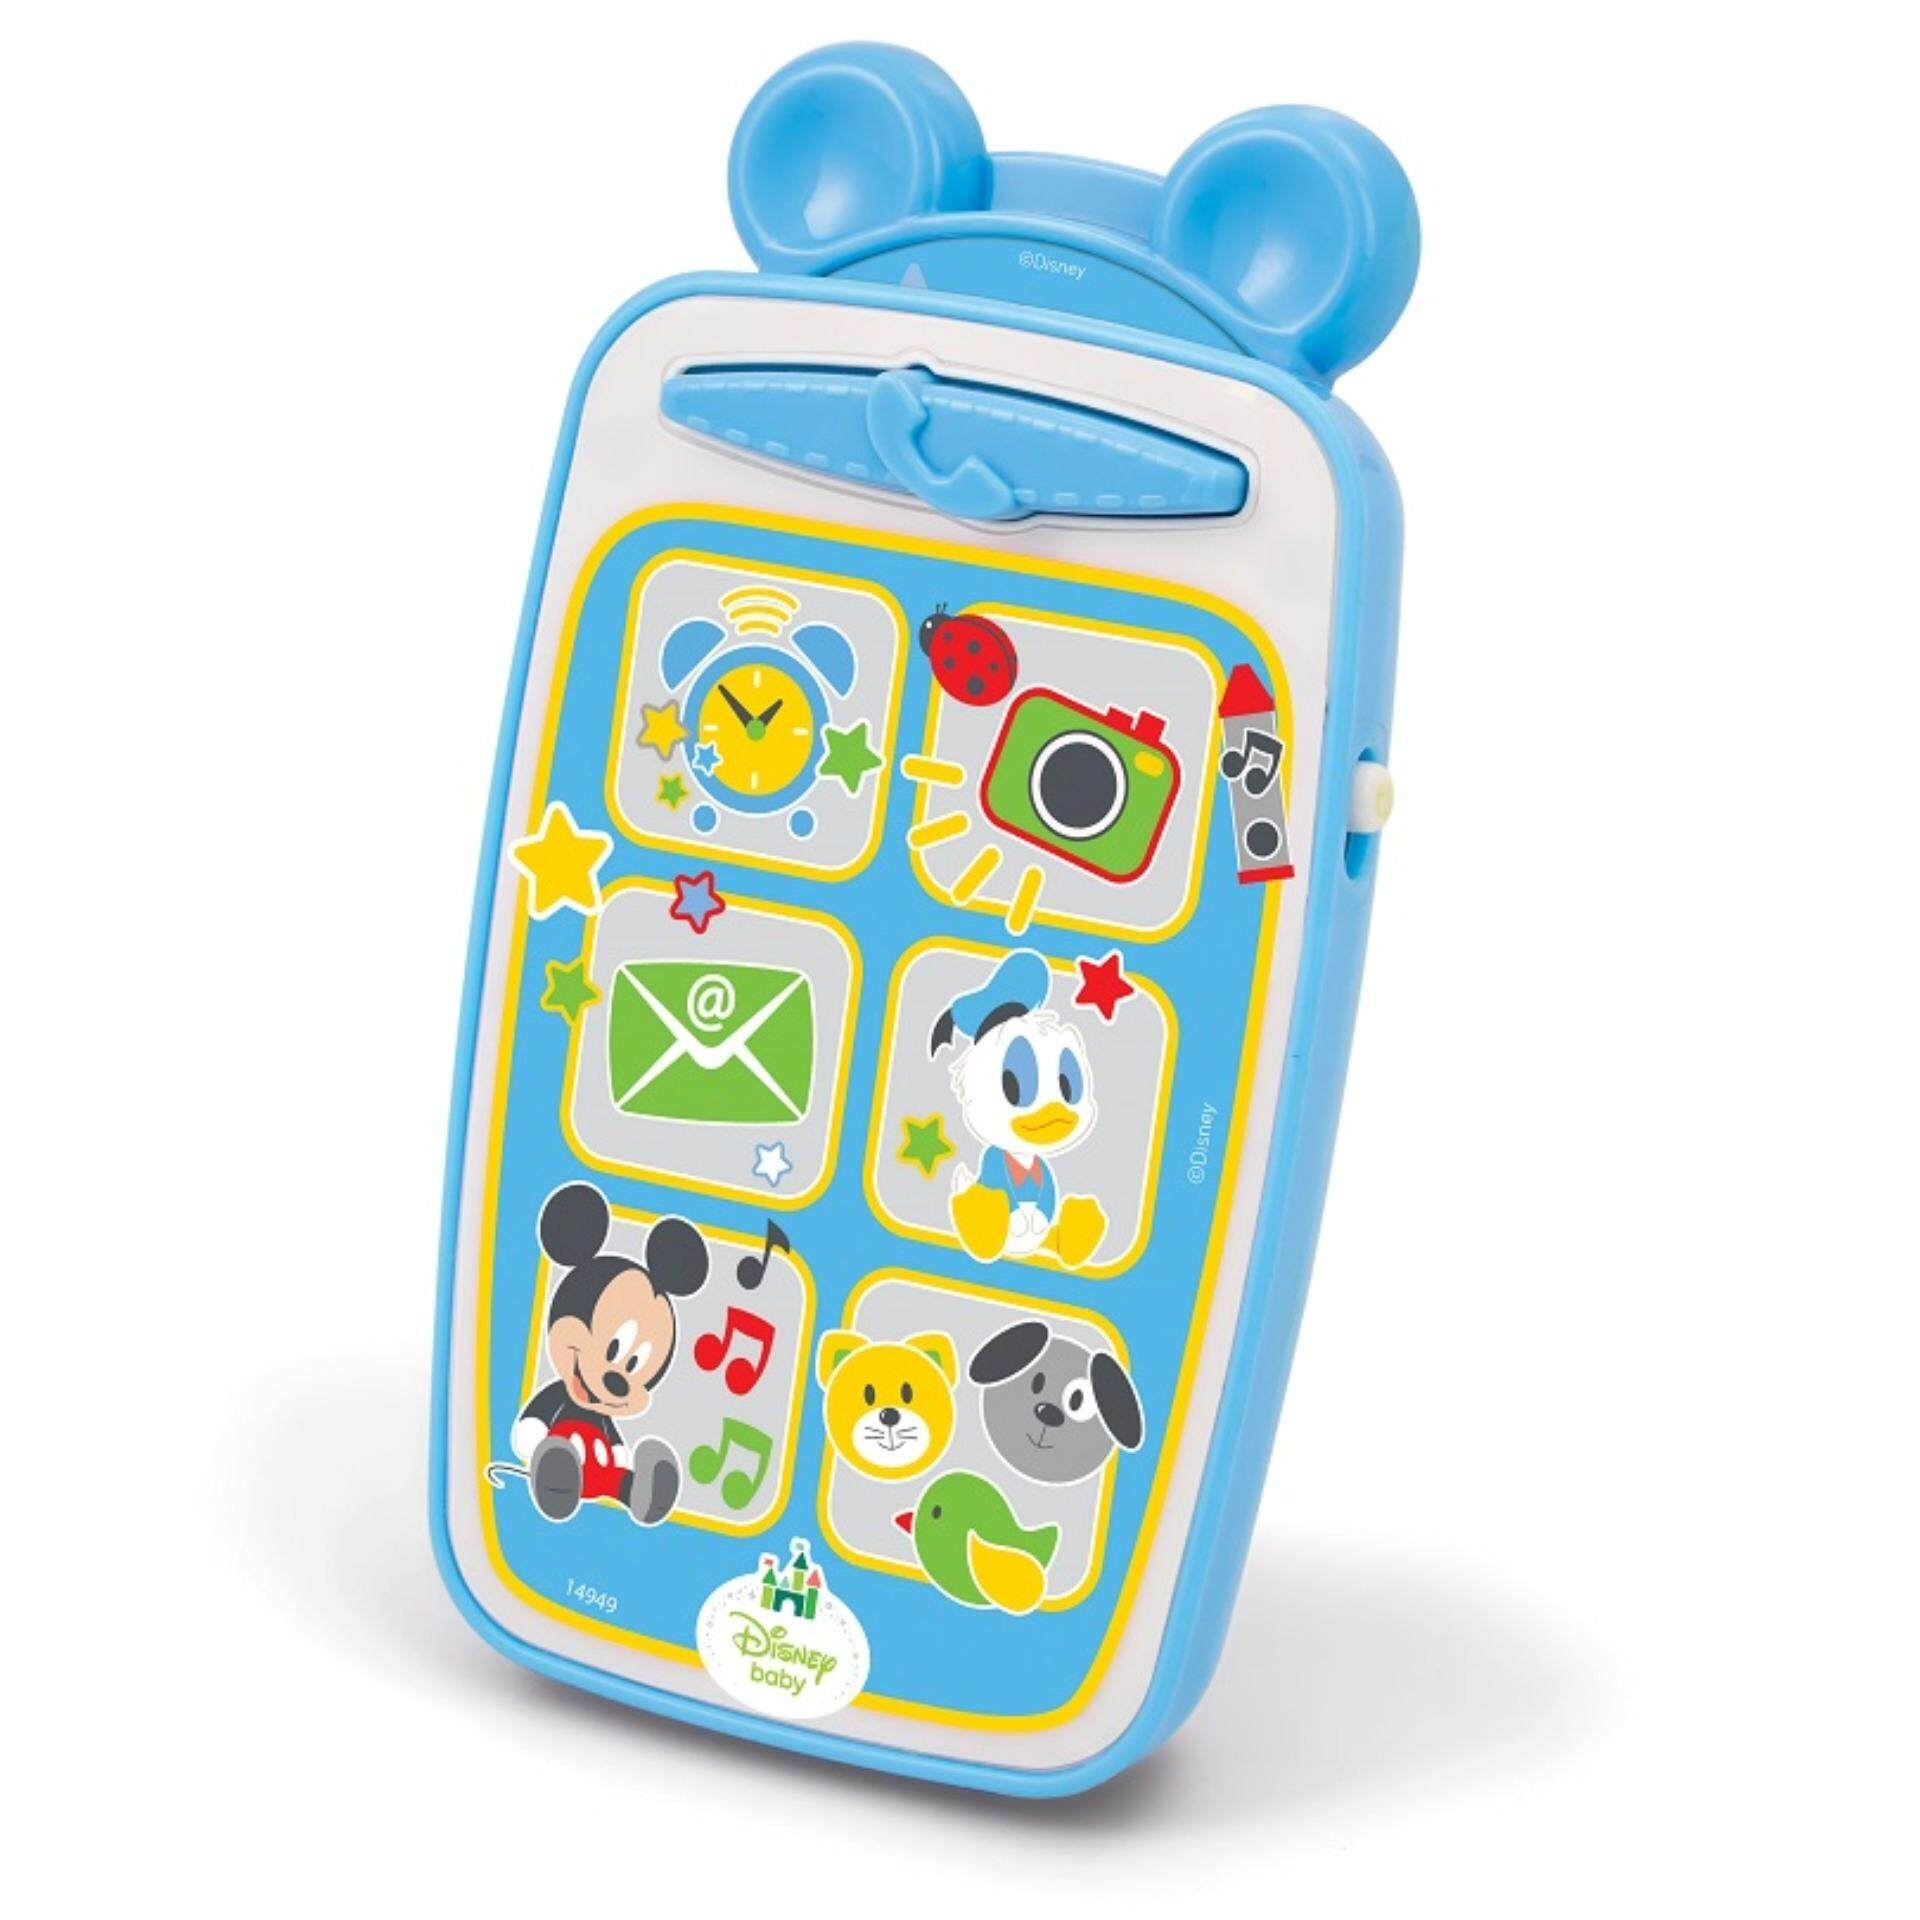 Disney Baby Developmental Musical Smartphone Toys - Mickey toys education